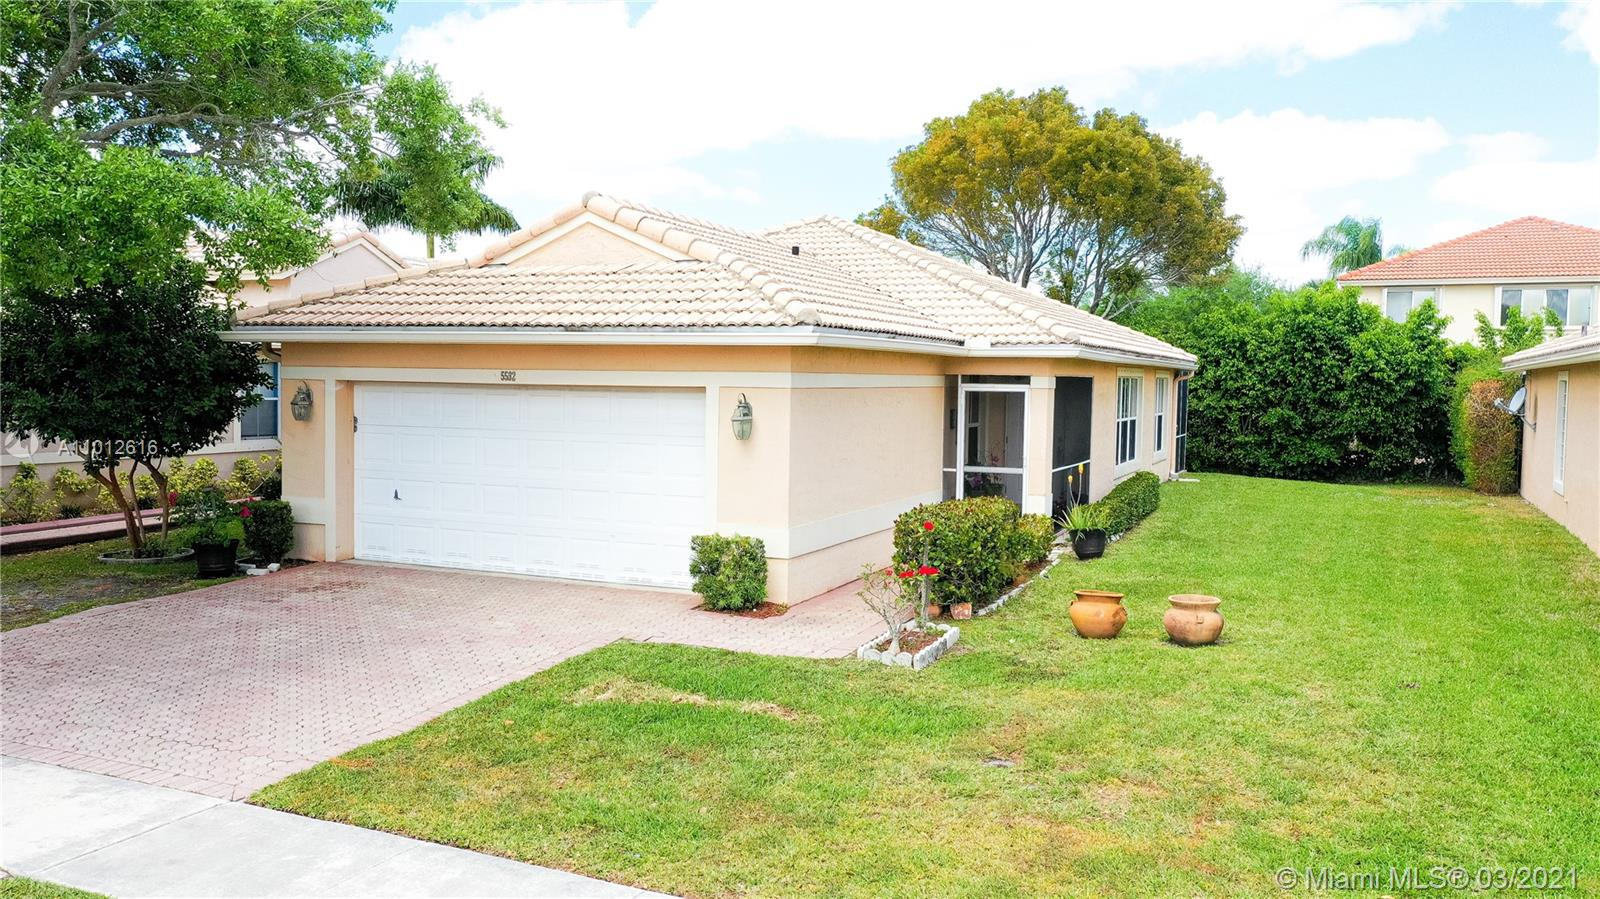 Property for sale at 5532 NW 124th Ave, Coral Springs,  Florida 33076